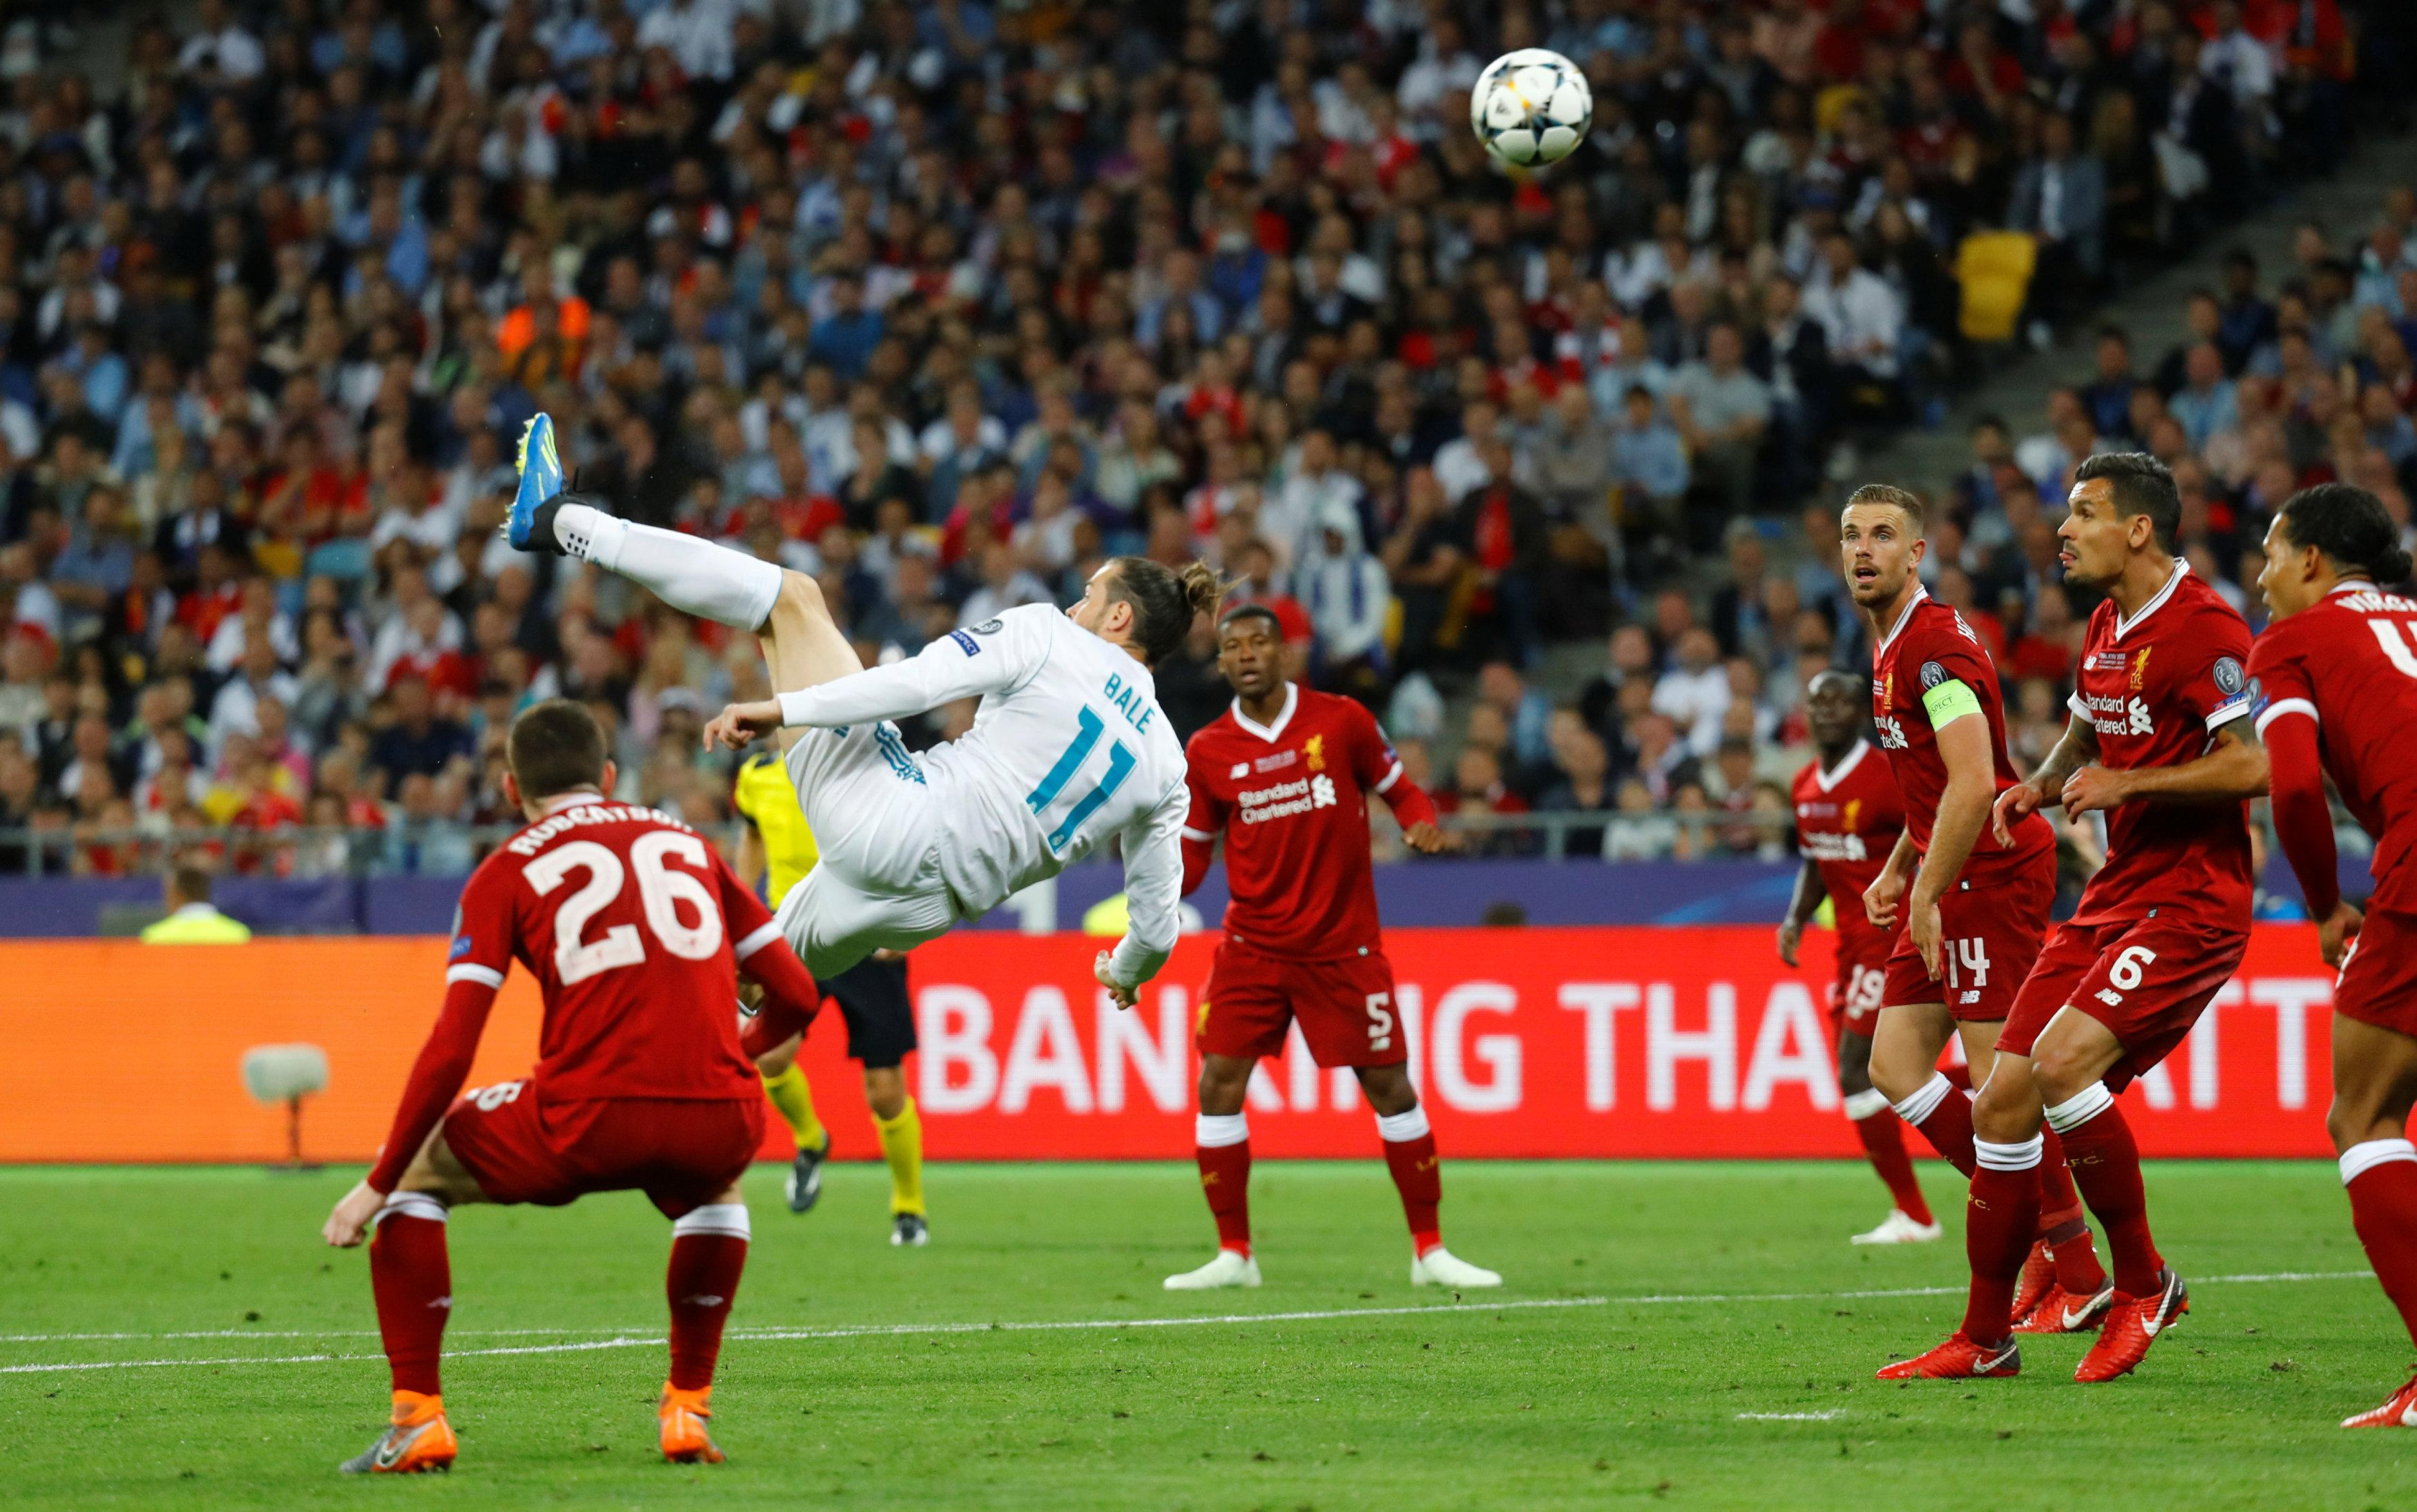 Gareth Bale put Liverpool to the sword with this stunning overhead kick to book Real's place in the Uefa Super Cup